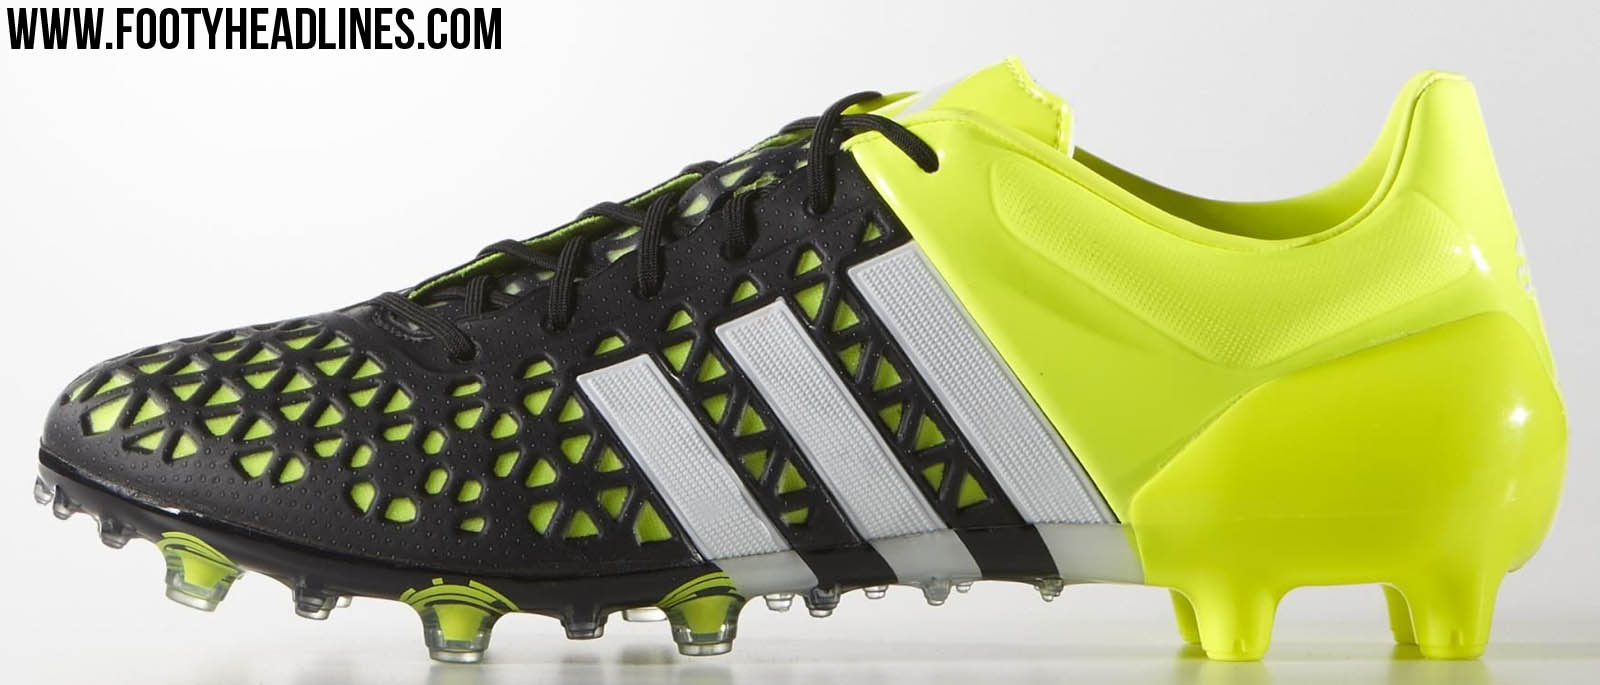 adidas ace 15.3 release date